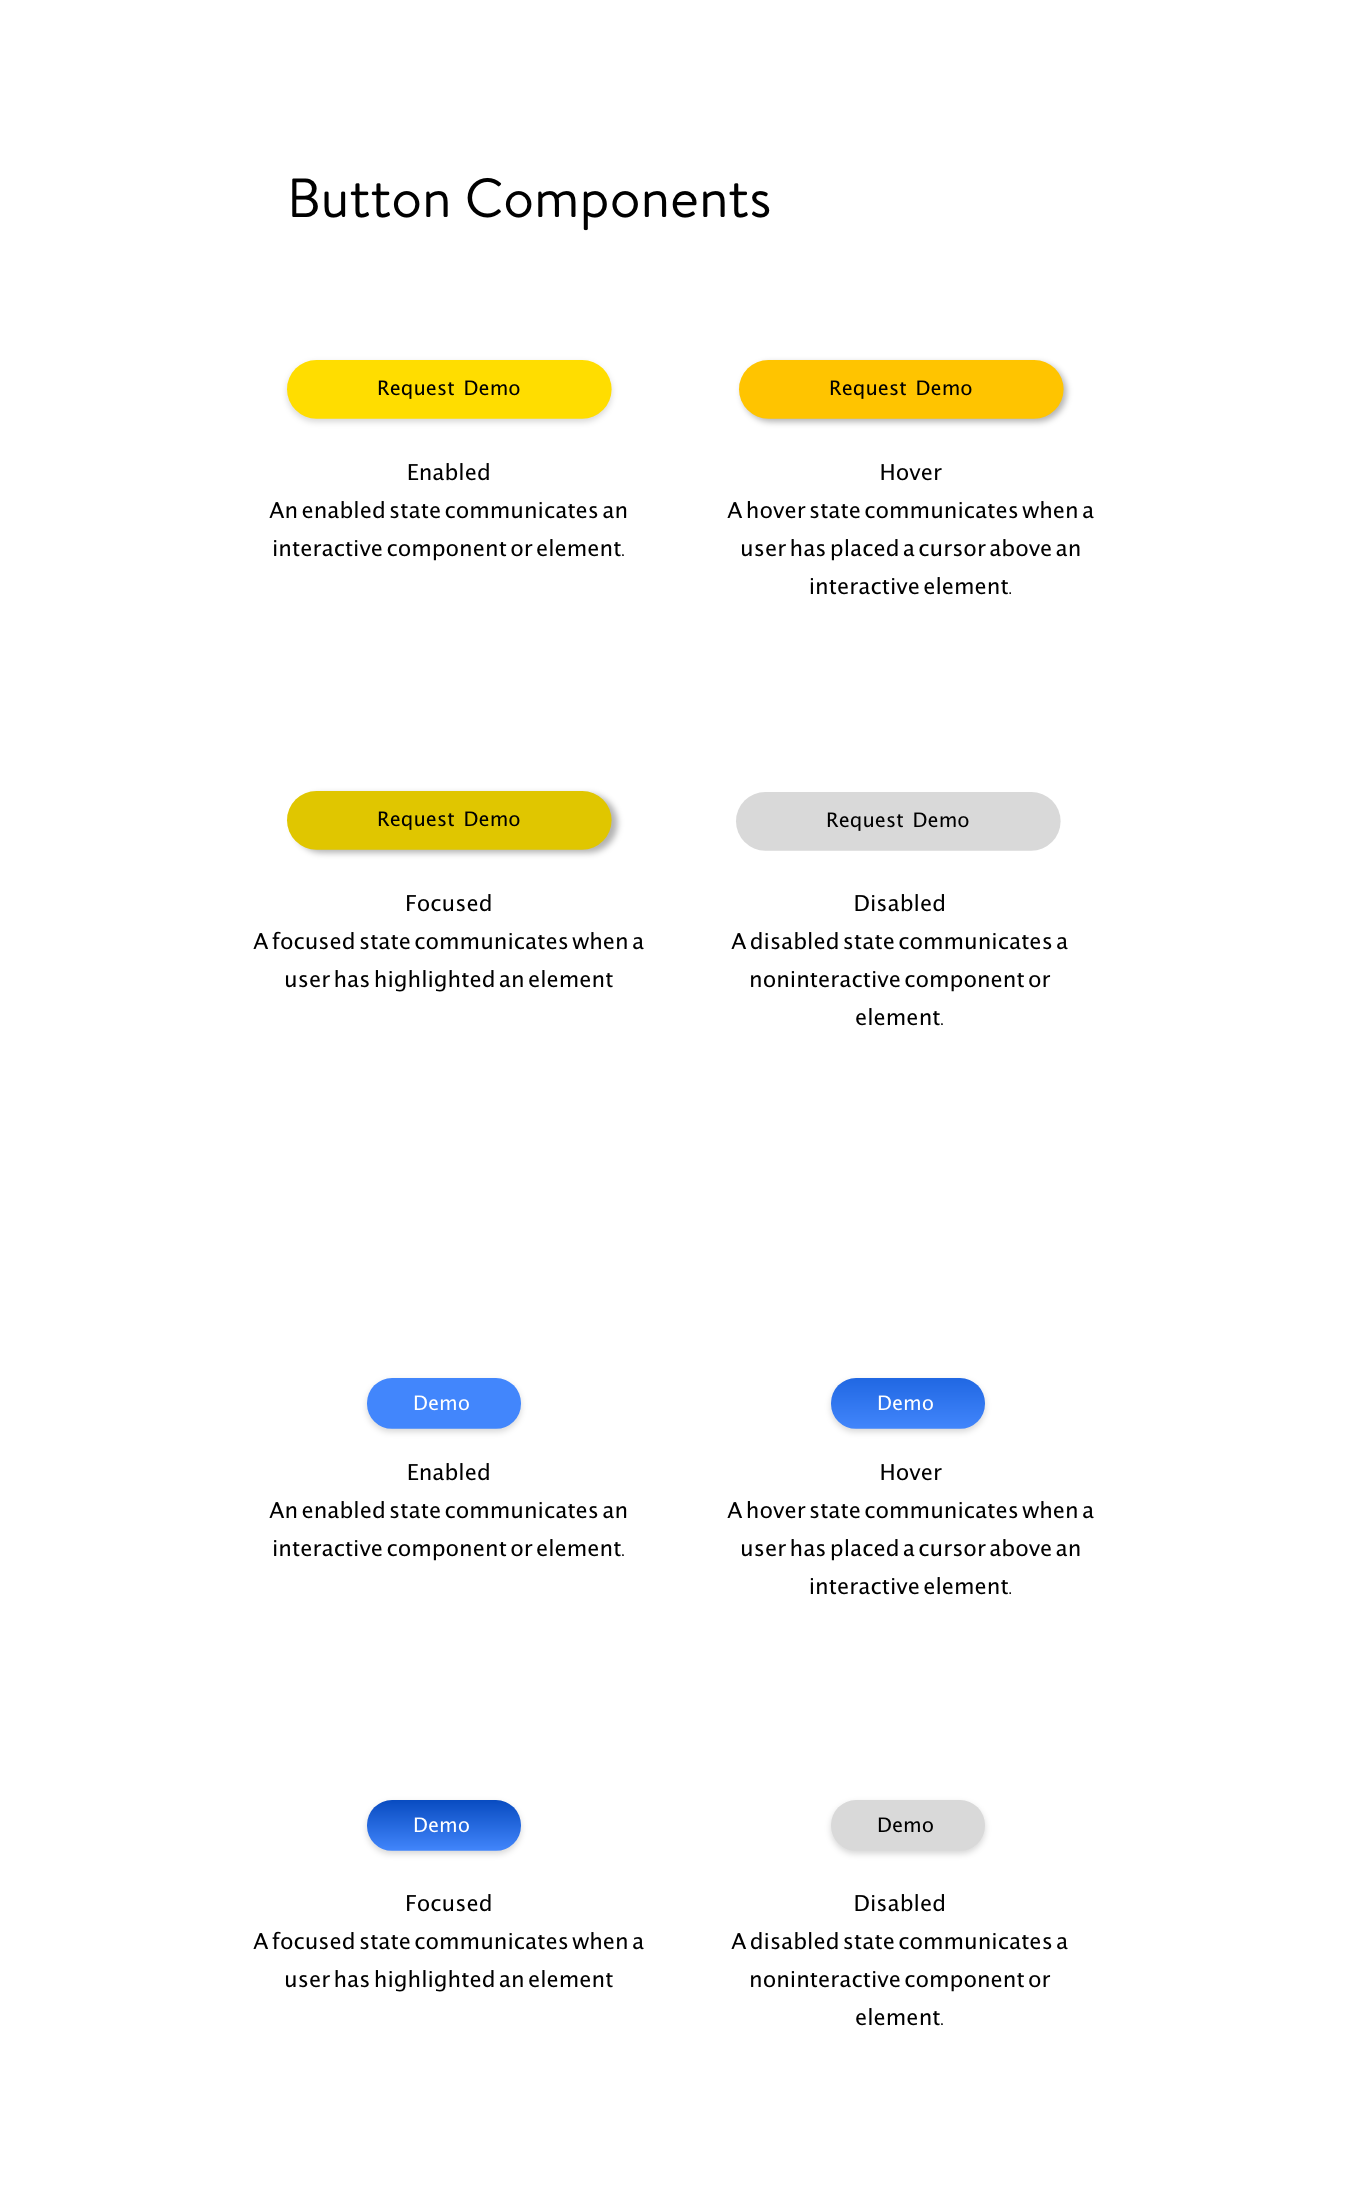 Button Components SM Landing Page.png